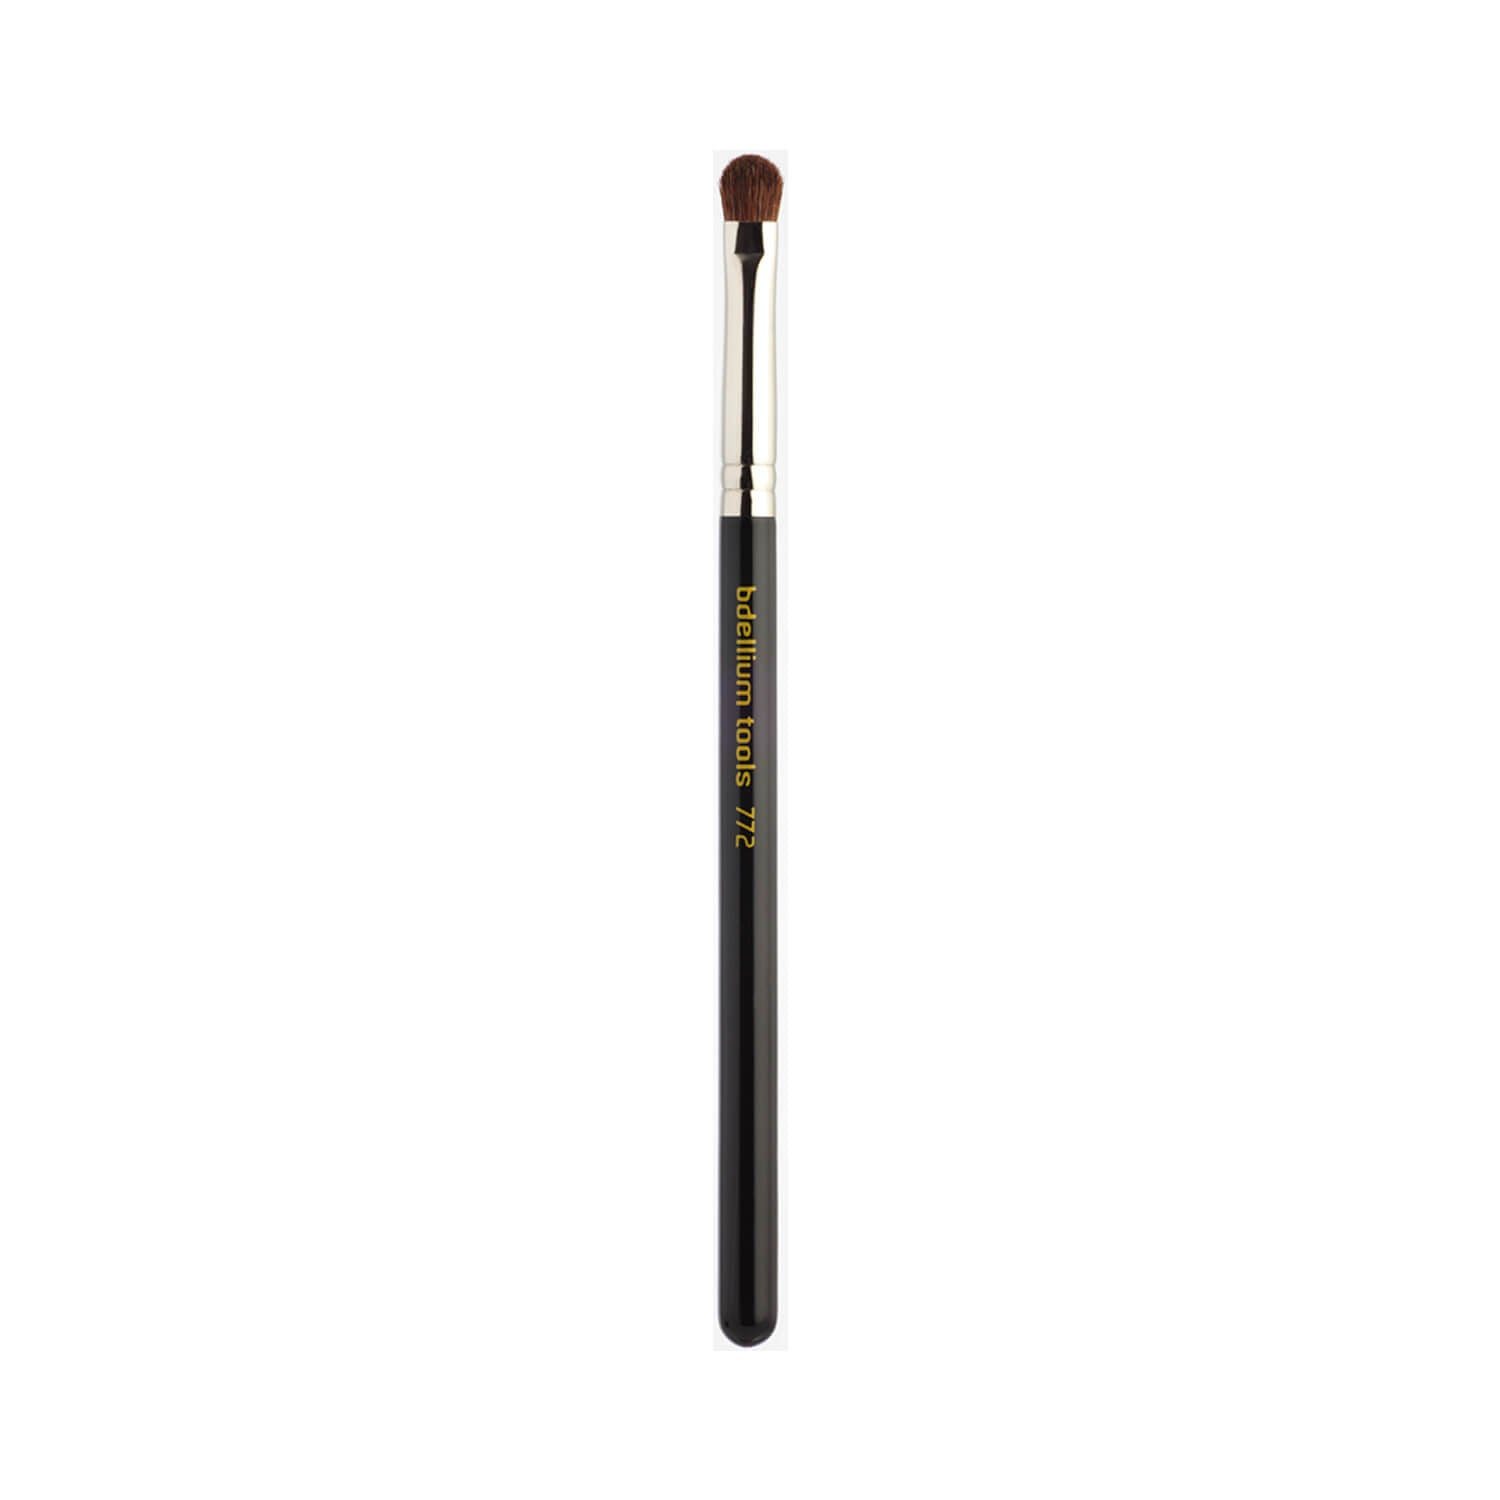 BDellium Tools Maestro Line 772 Small Shader Brush Black